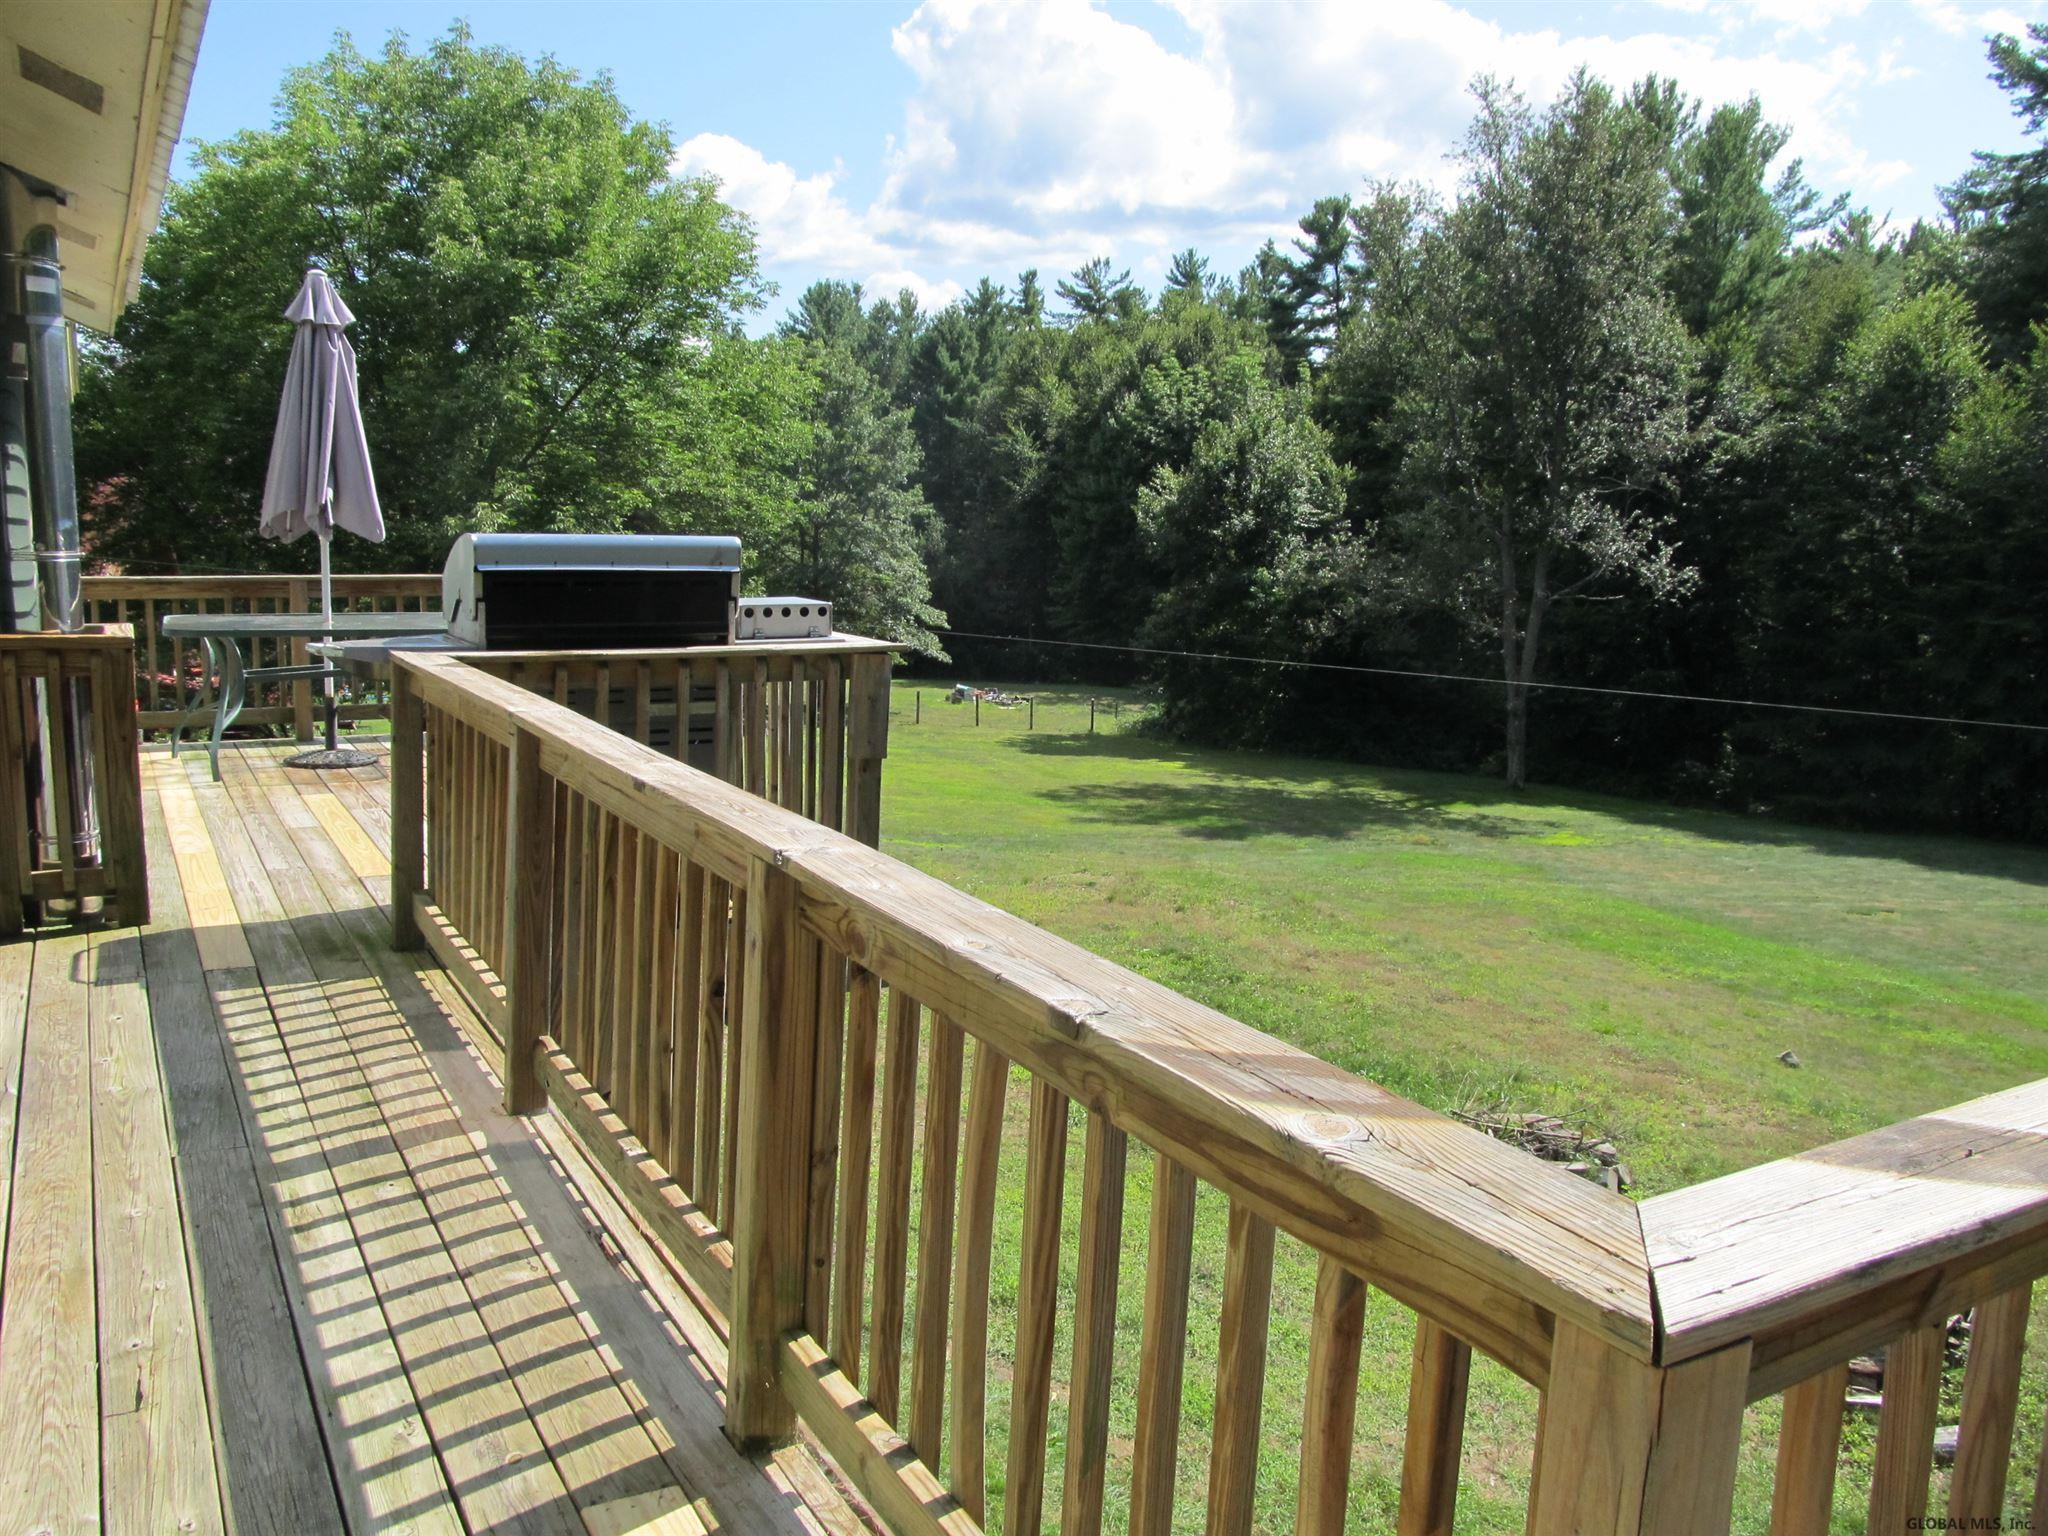 87 Coolidge Hill Rd In Diamond Point Ny Listed For